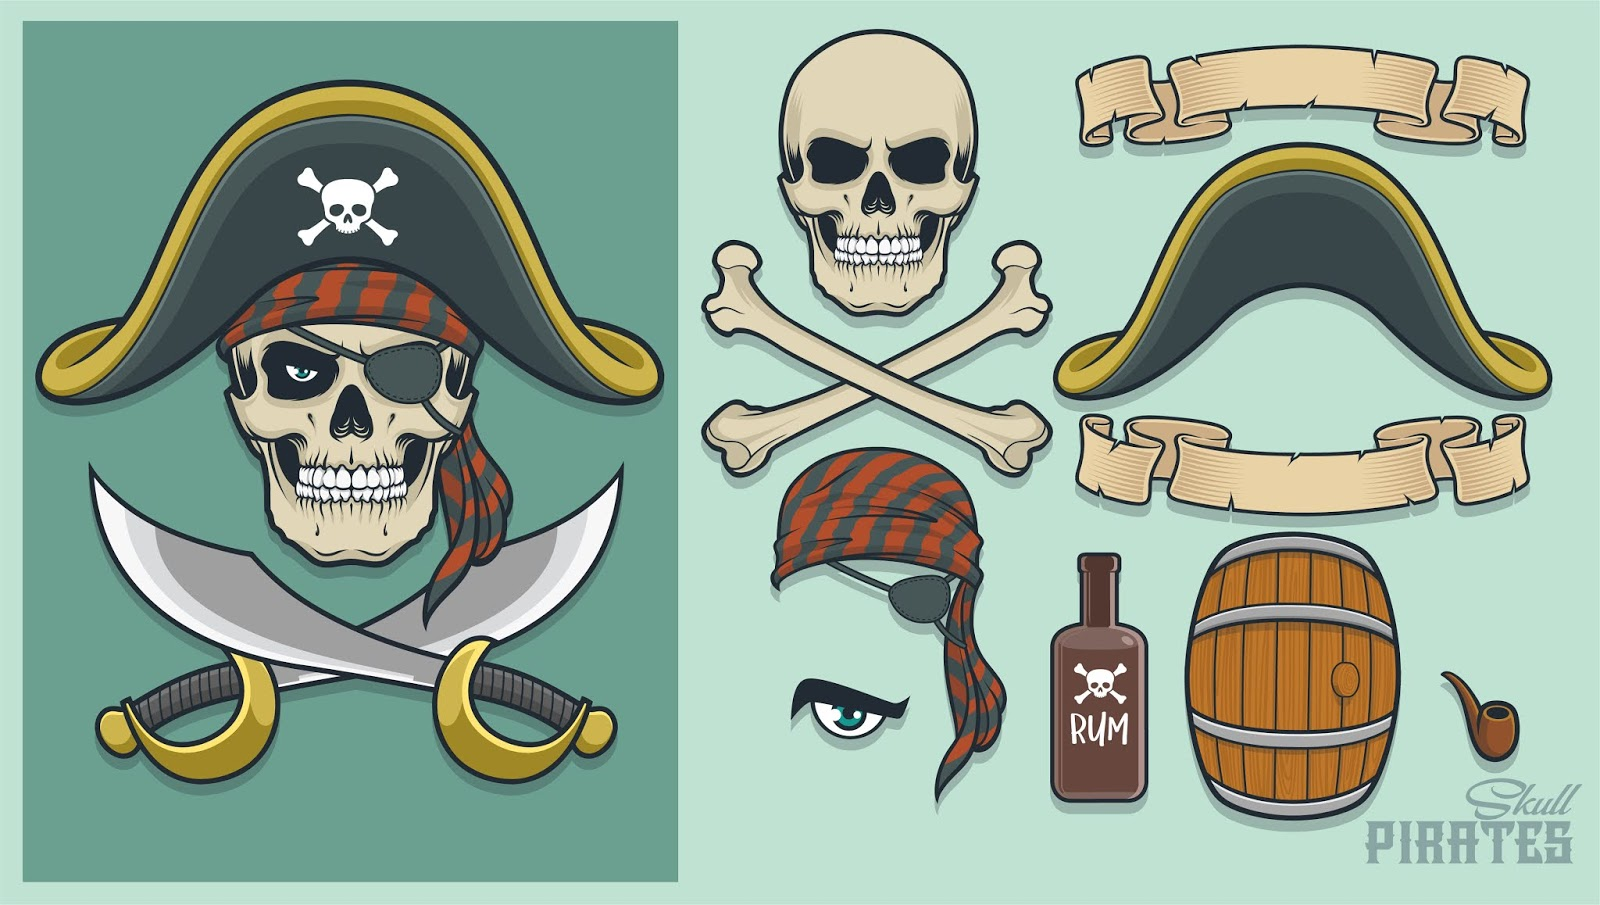 Pirate Elements Creating Mascot Logo Free Download Vector CDR, AI, EPS and PNG Formats